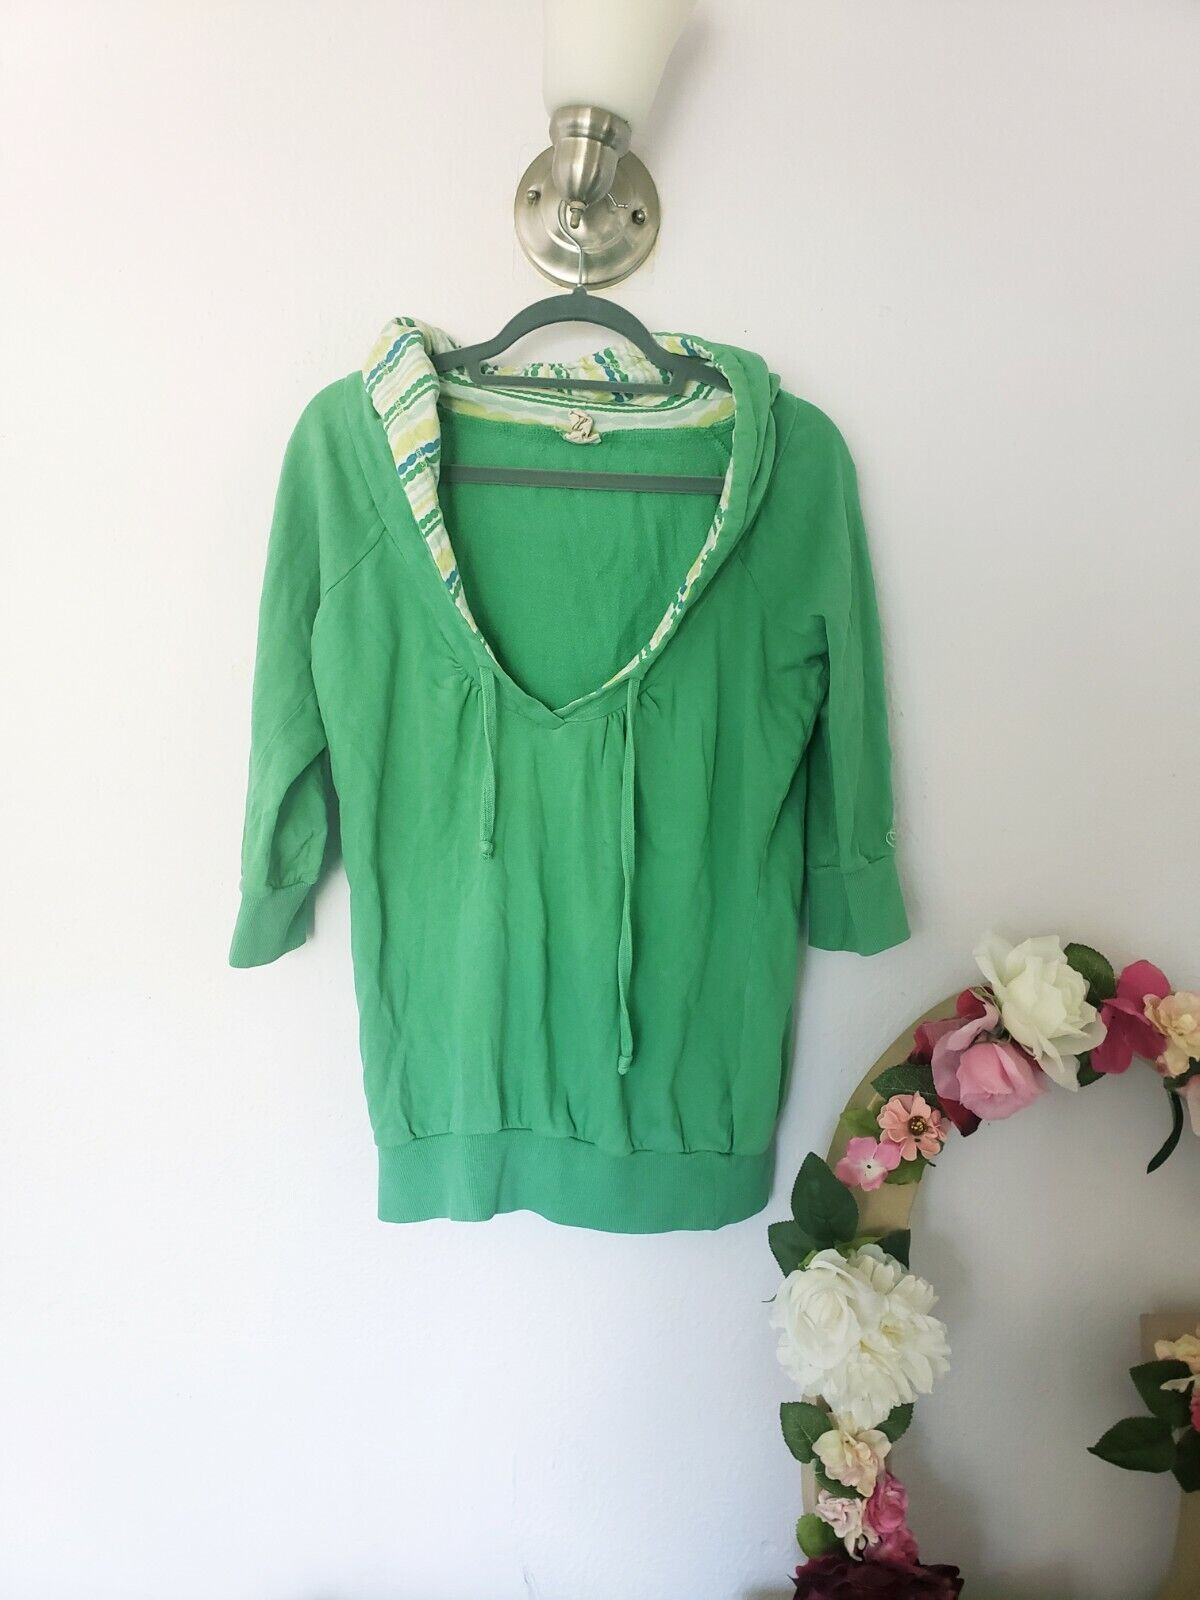 Green O'Neill Patterned Adjustable Hoodie Loose V Neck 3/4 Sleeve Pullover M/L